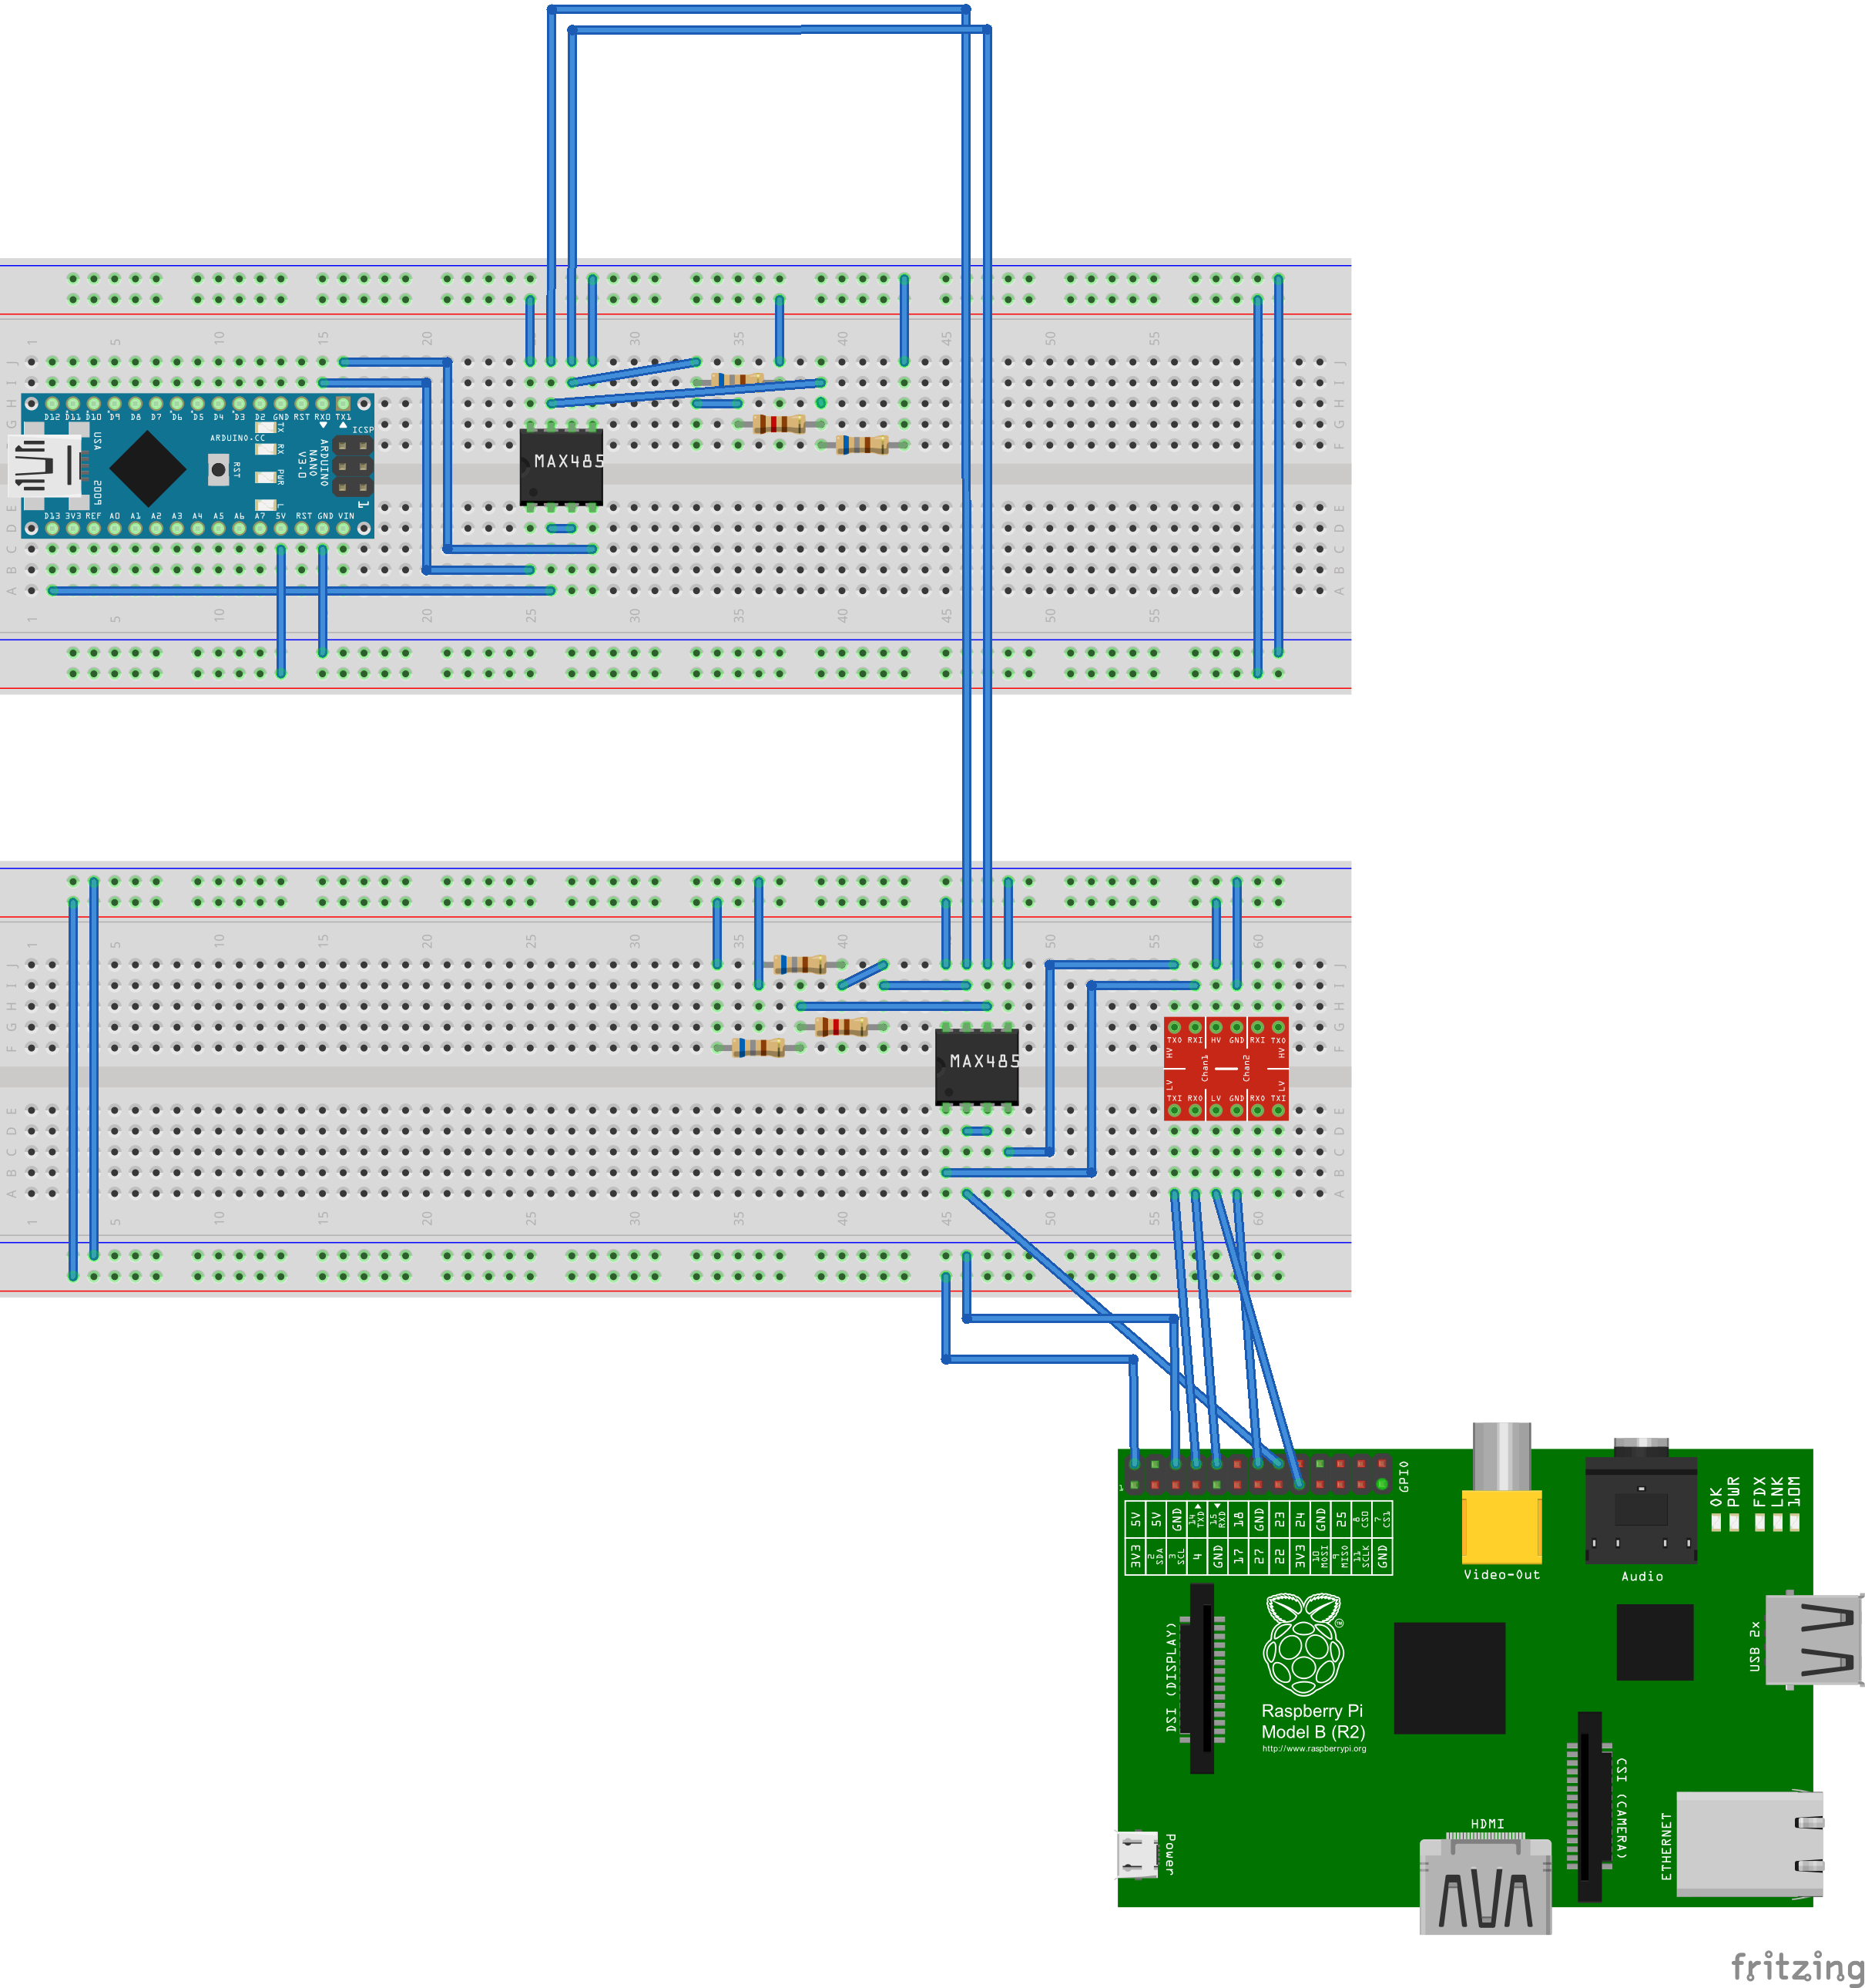 arduino nano raspberry pi via max485 verbinden. Black Bedroom Furniture Sets. Home Design Ideas